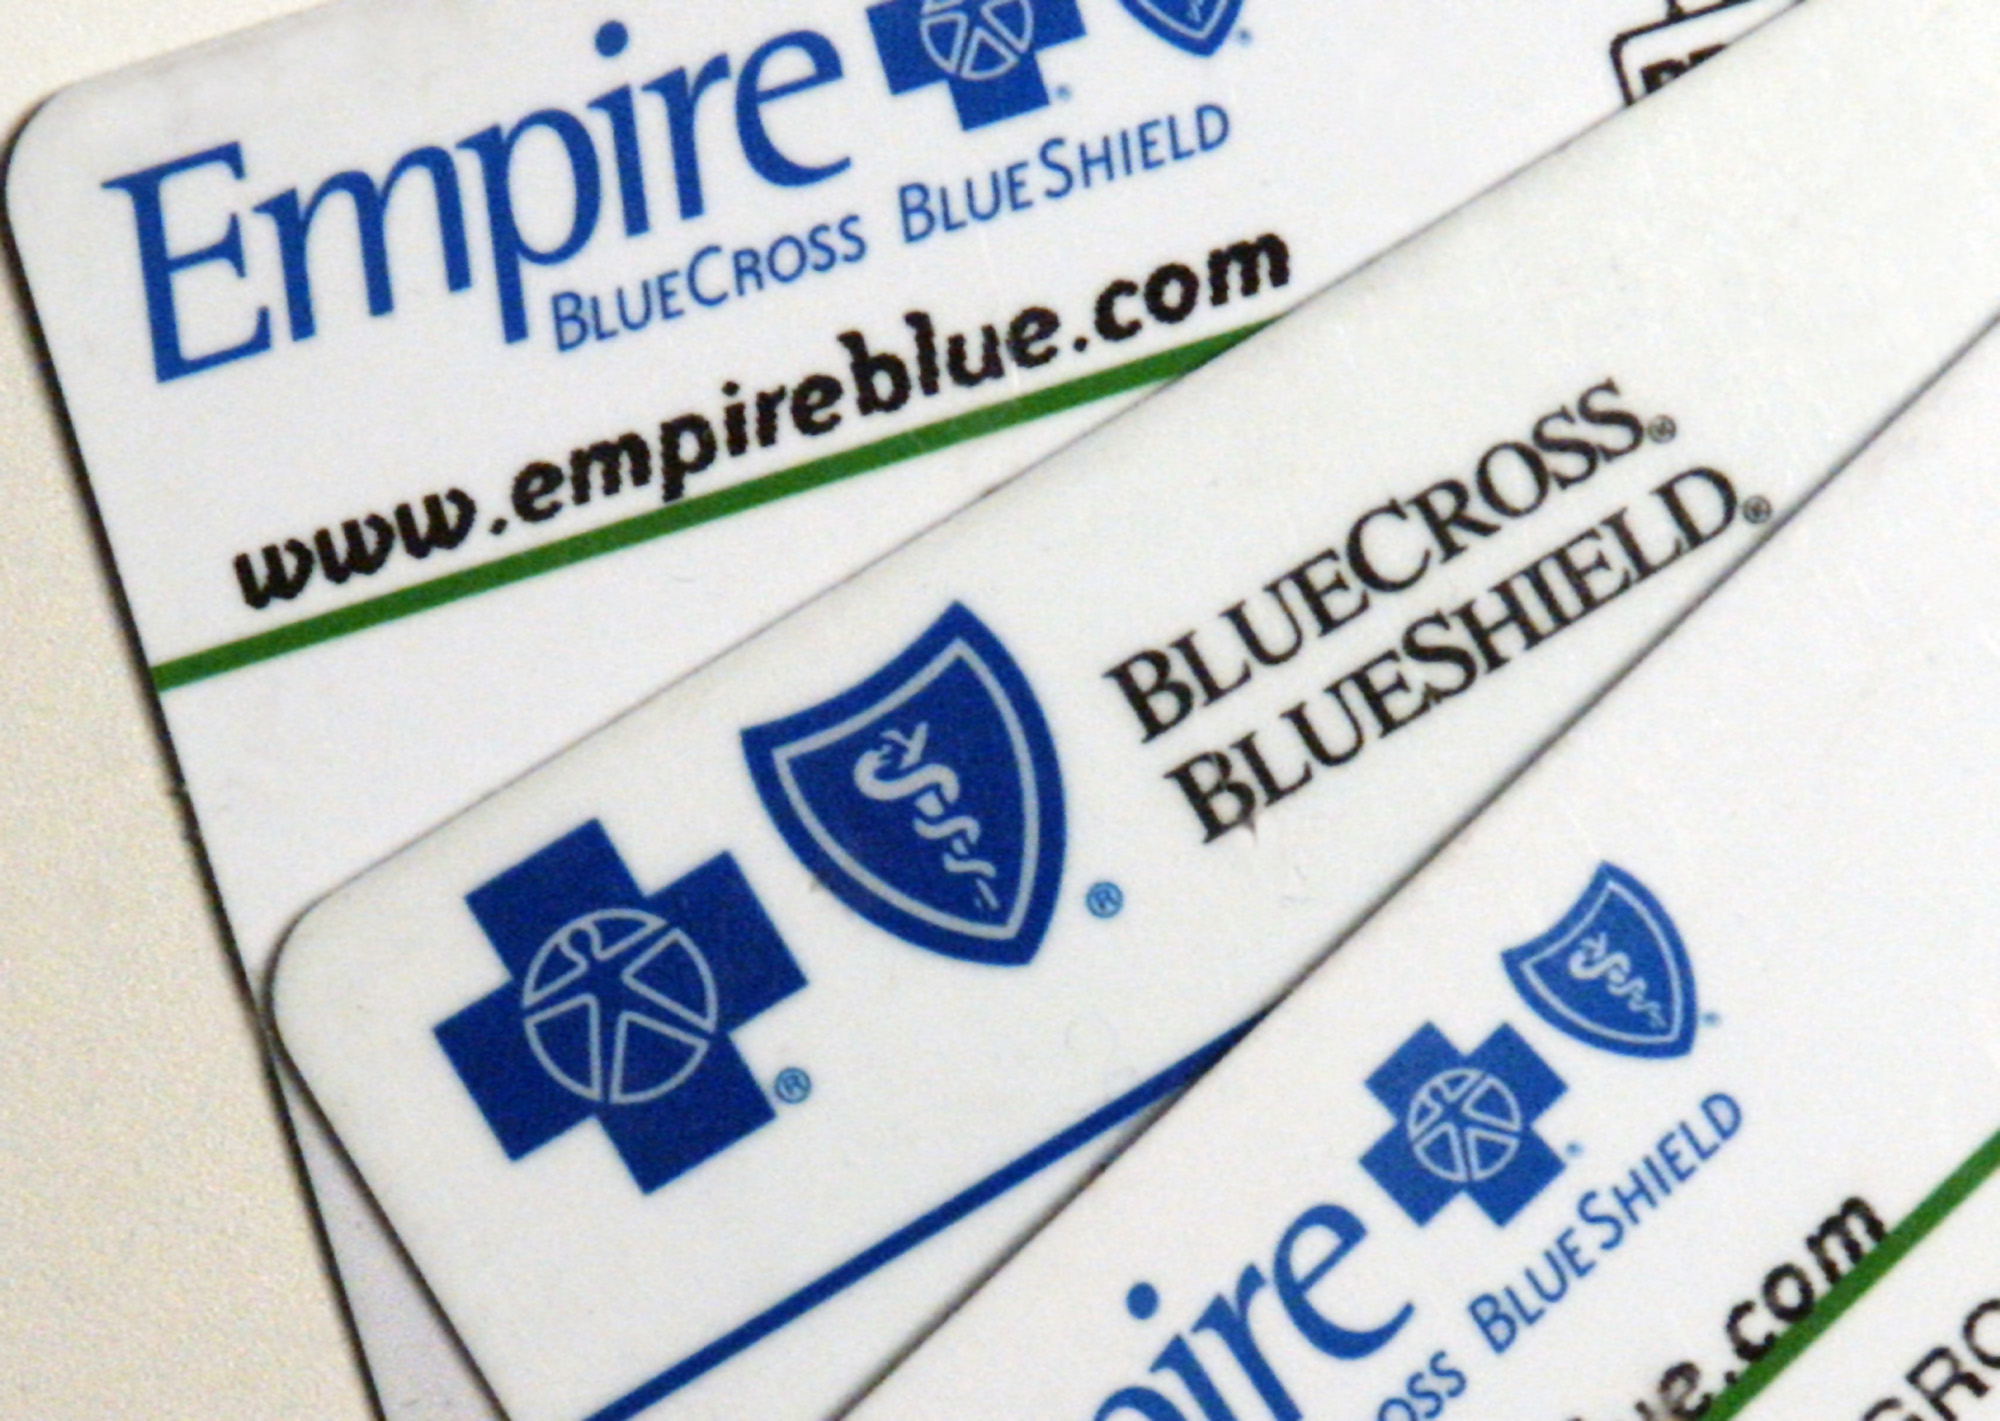 Empire Blue Cross Blue Shield health benefits cards are arranged for a photograph Tuesday, September 27, 2005.